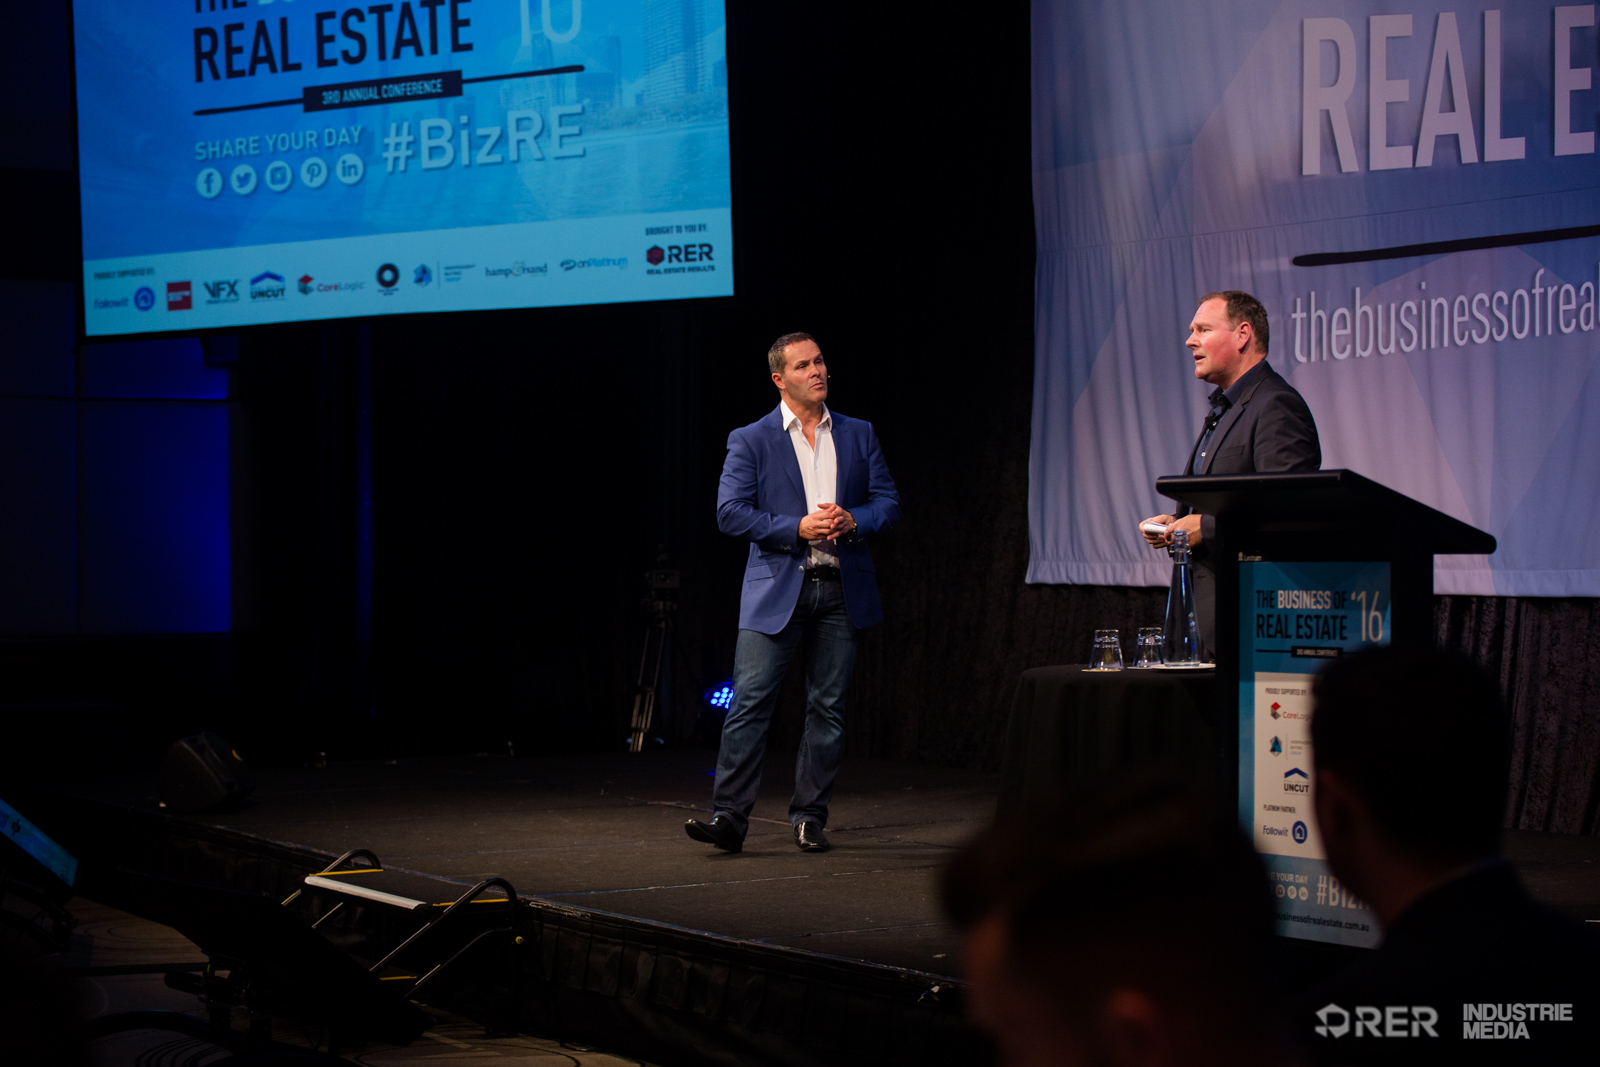 http://www.thebusinessofrealestate.com.au/wp-content/uploads/2016/09/RER_BUSINESS_OF_REAL_ESTATE_DAY_2-35.jpg